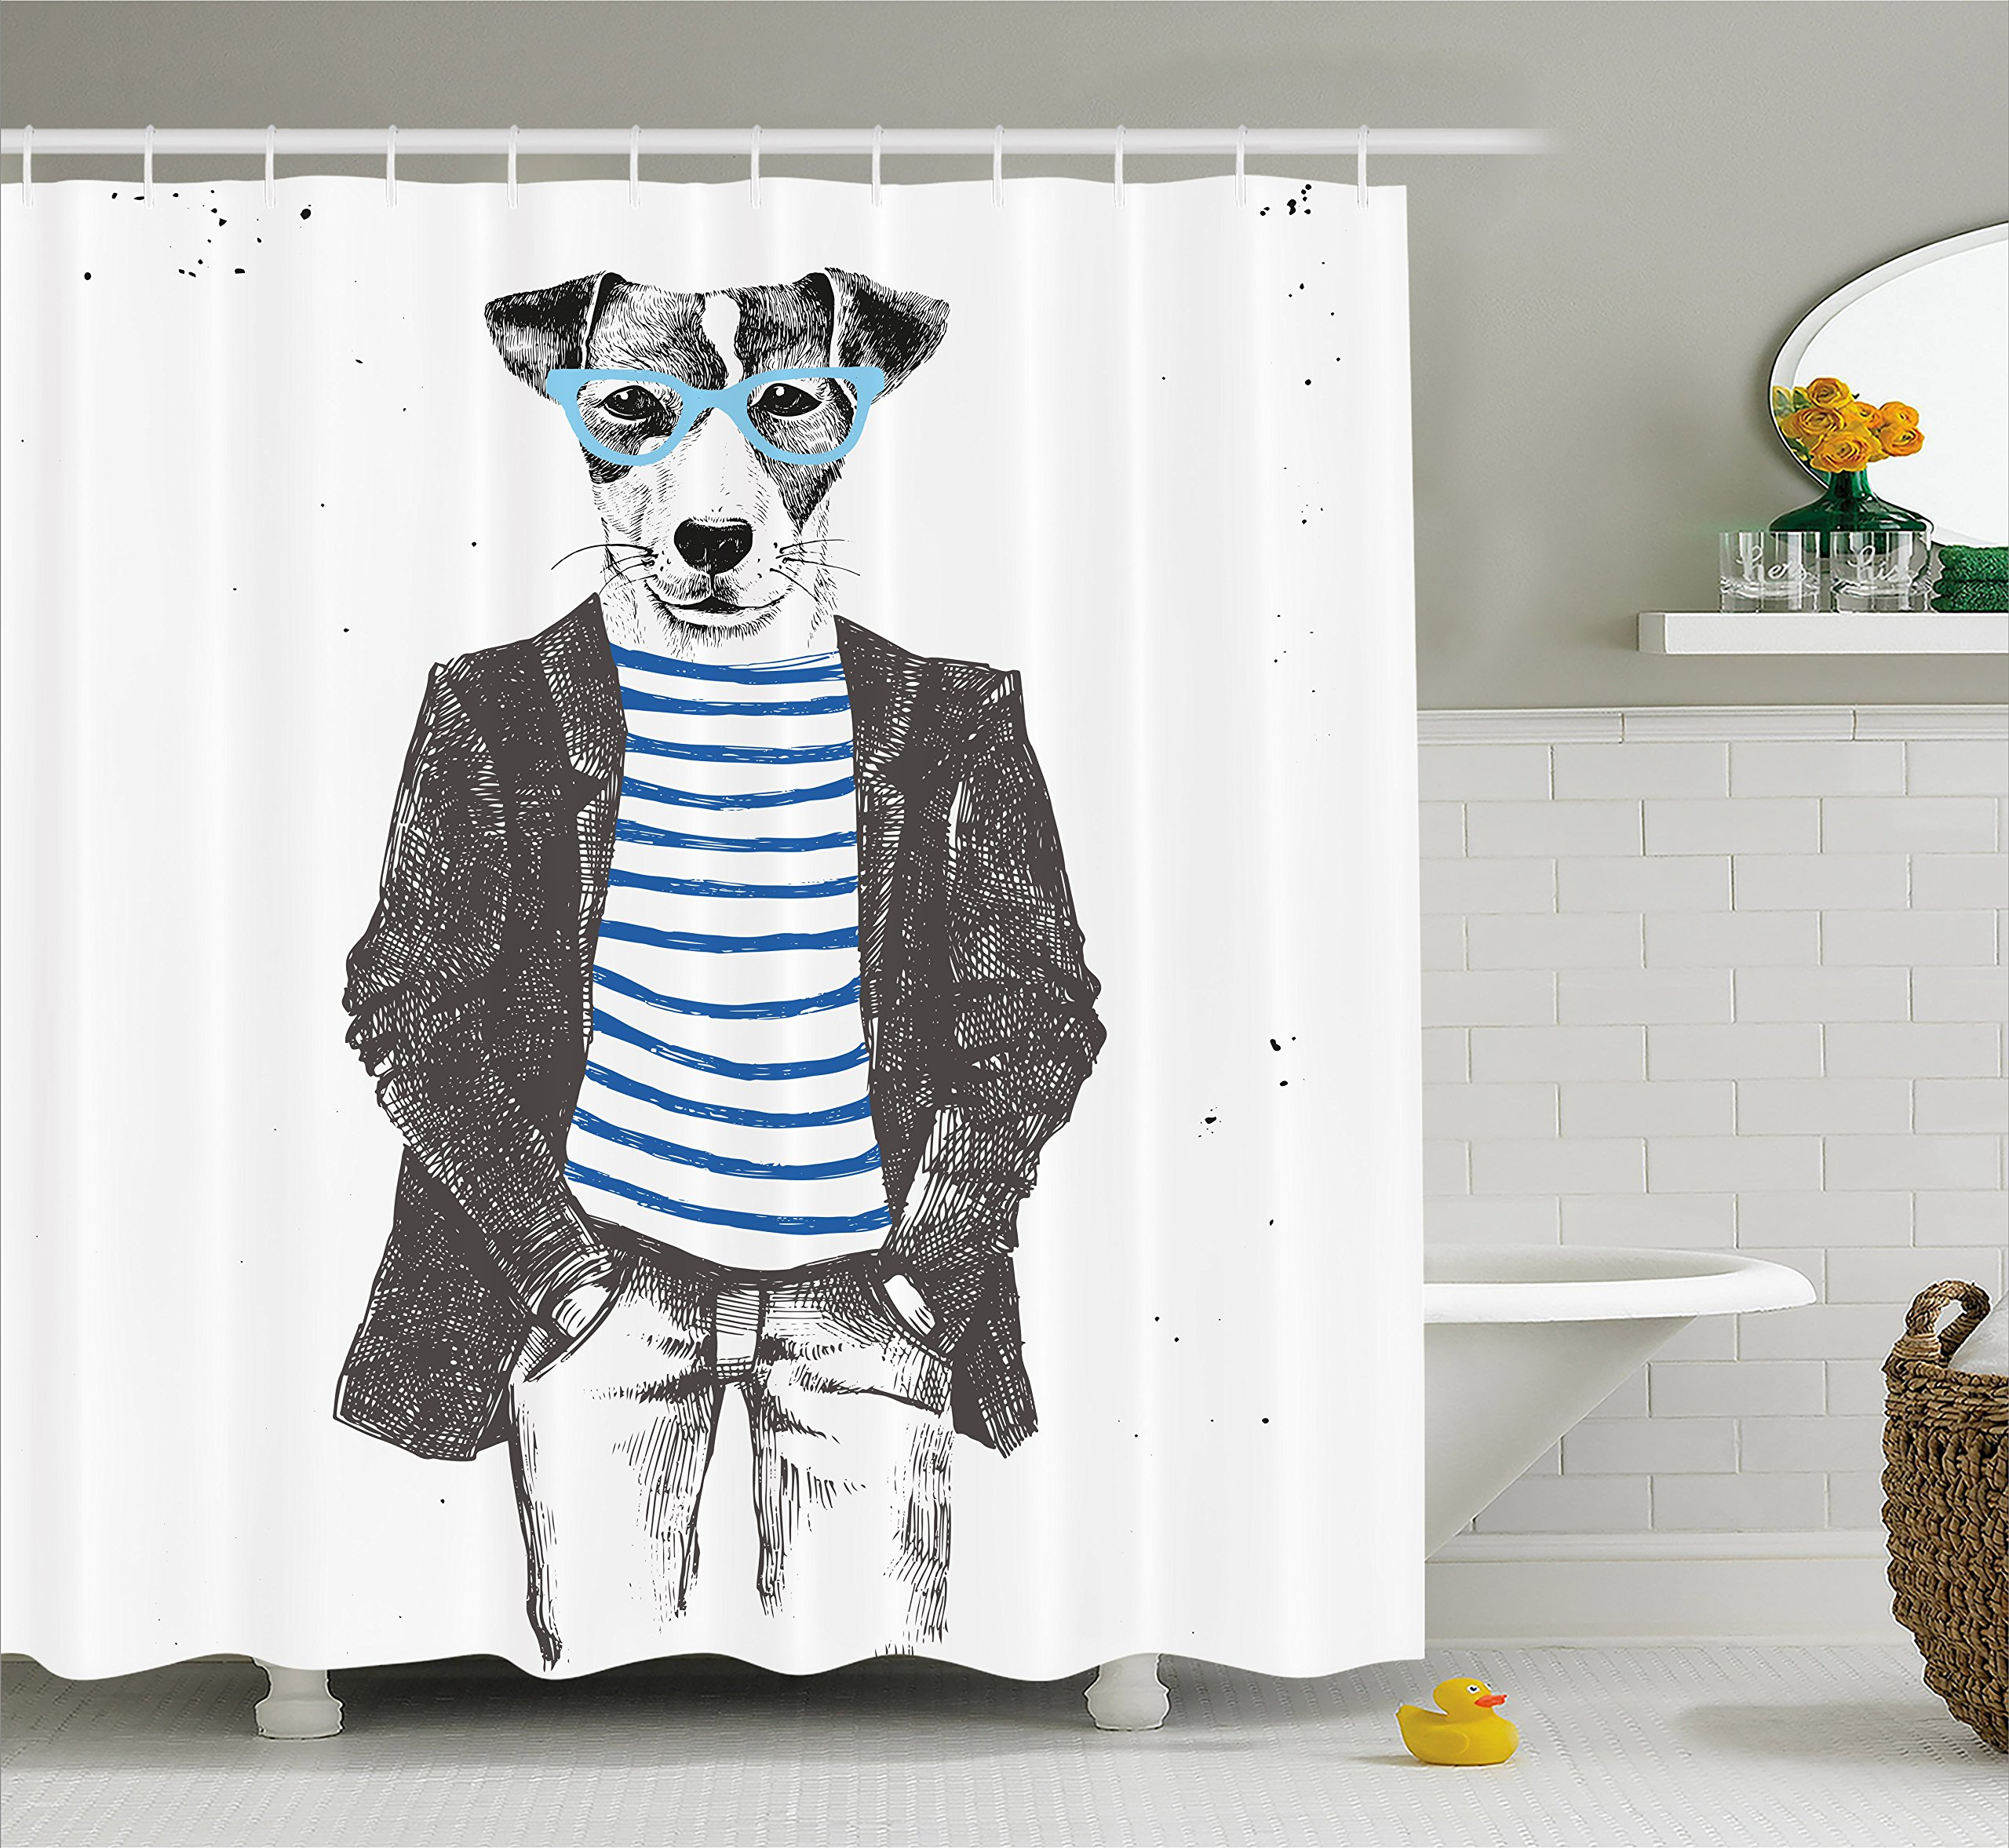 Ambesonne Quirky Shower Curtain by, Dressed Up Hipster Dog with Glasses Hand Drawn Sketchy Fashion Animal Fun, Fabric Bathroom Decor Set with Hooks, 75 Inches Long, Black White Blue by Ambesonne